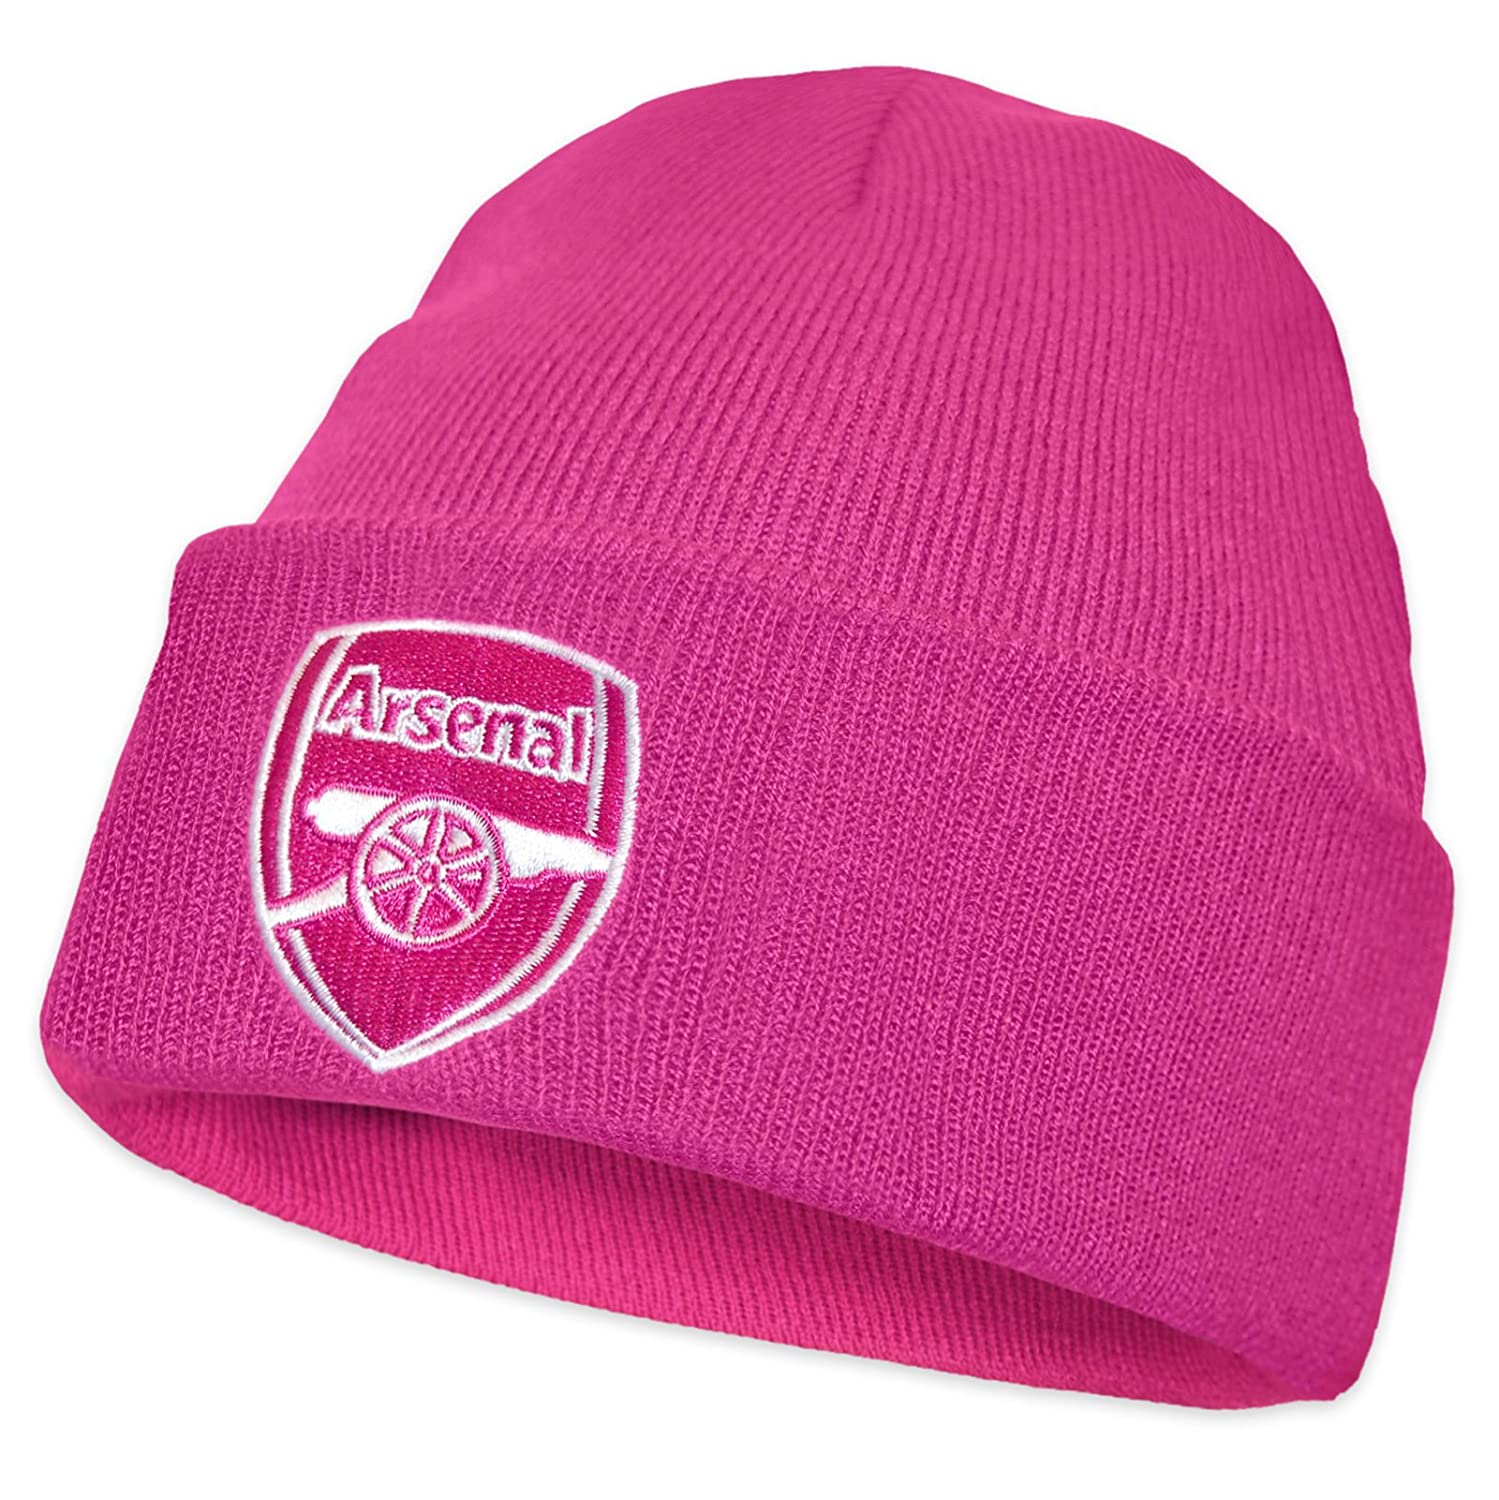 2a711323bce Arsenal FC Official Football Gift Knitted Bronx Beanie Hat Navy Red Trim   Amazon.co.uk  Clothing